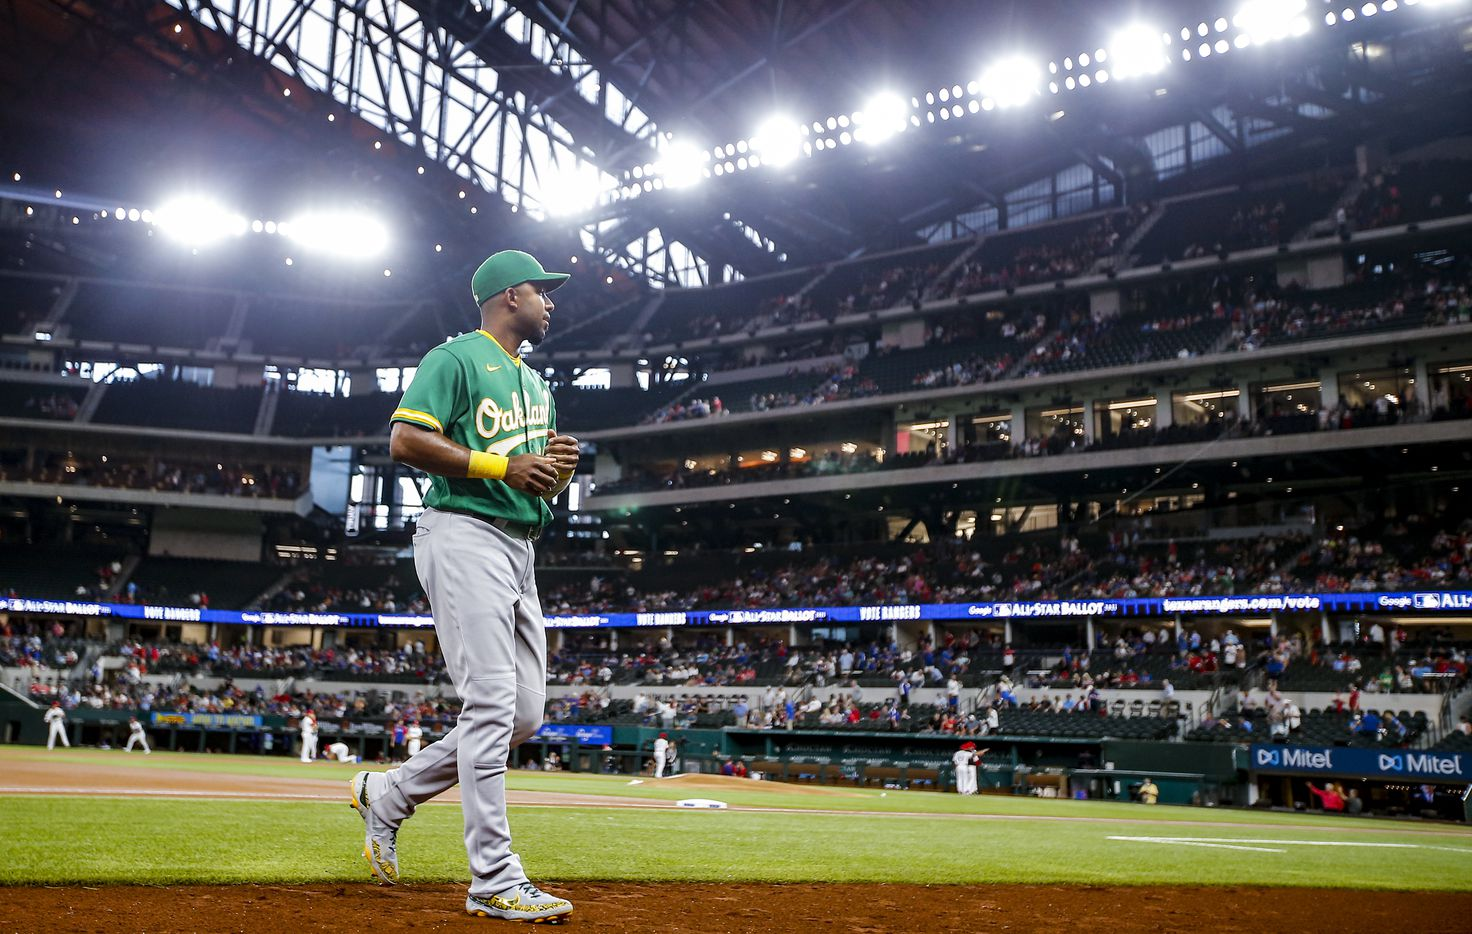 Oakland Athletics shortstop Elvis Andrus (17) heads to the dugout before the start of a baseball game against the Texas Rangers in Arlington, Monday, June 21, 2021. (Brandon Wade/Special Contributor)